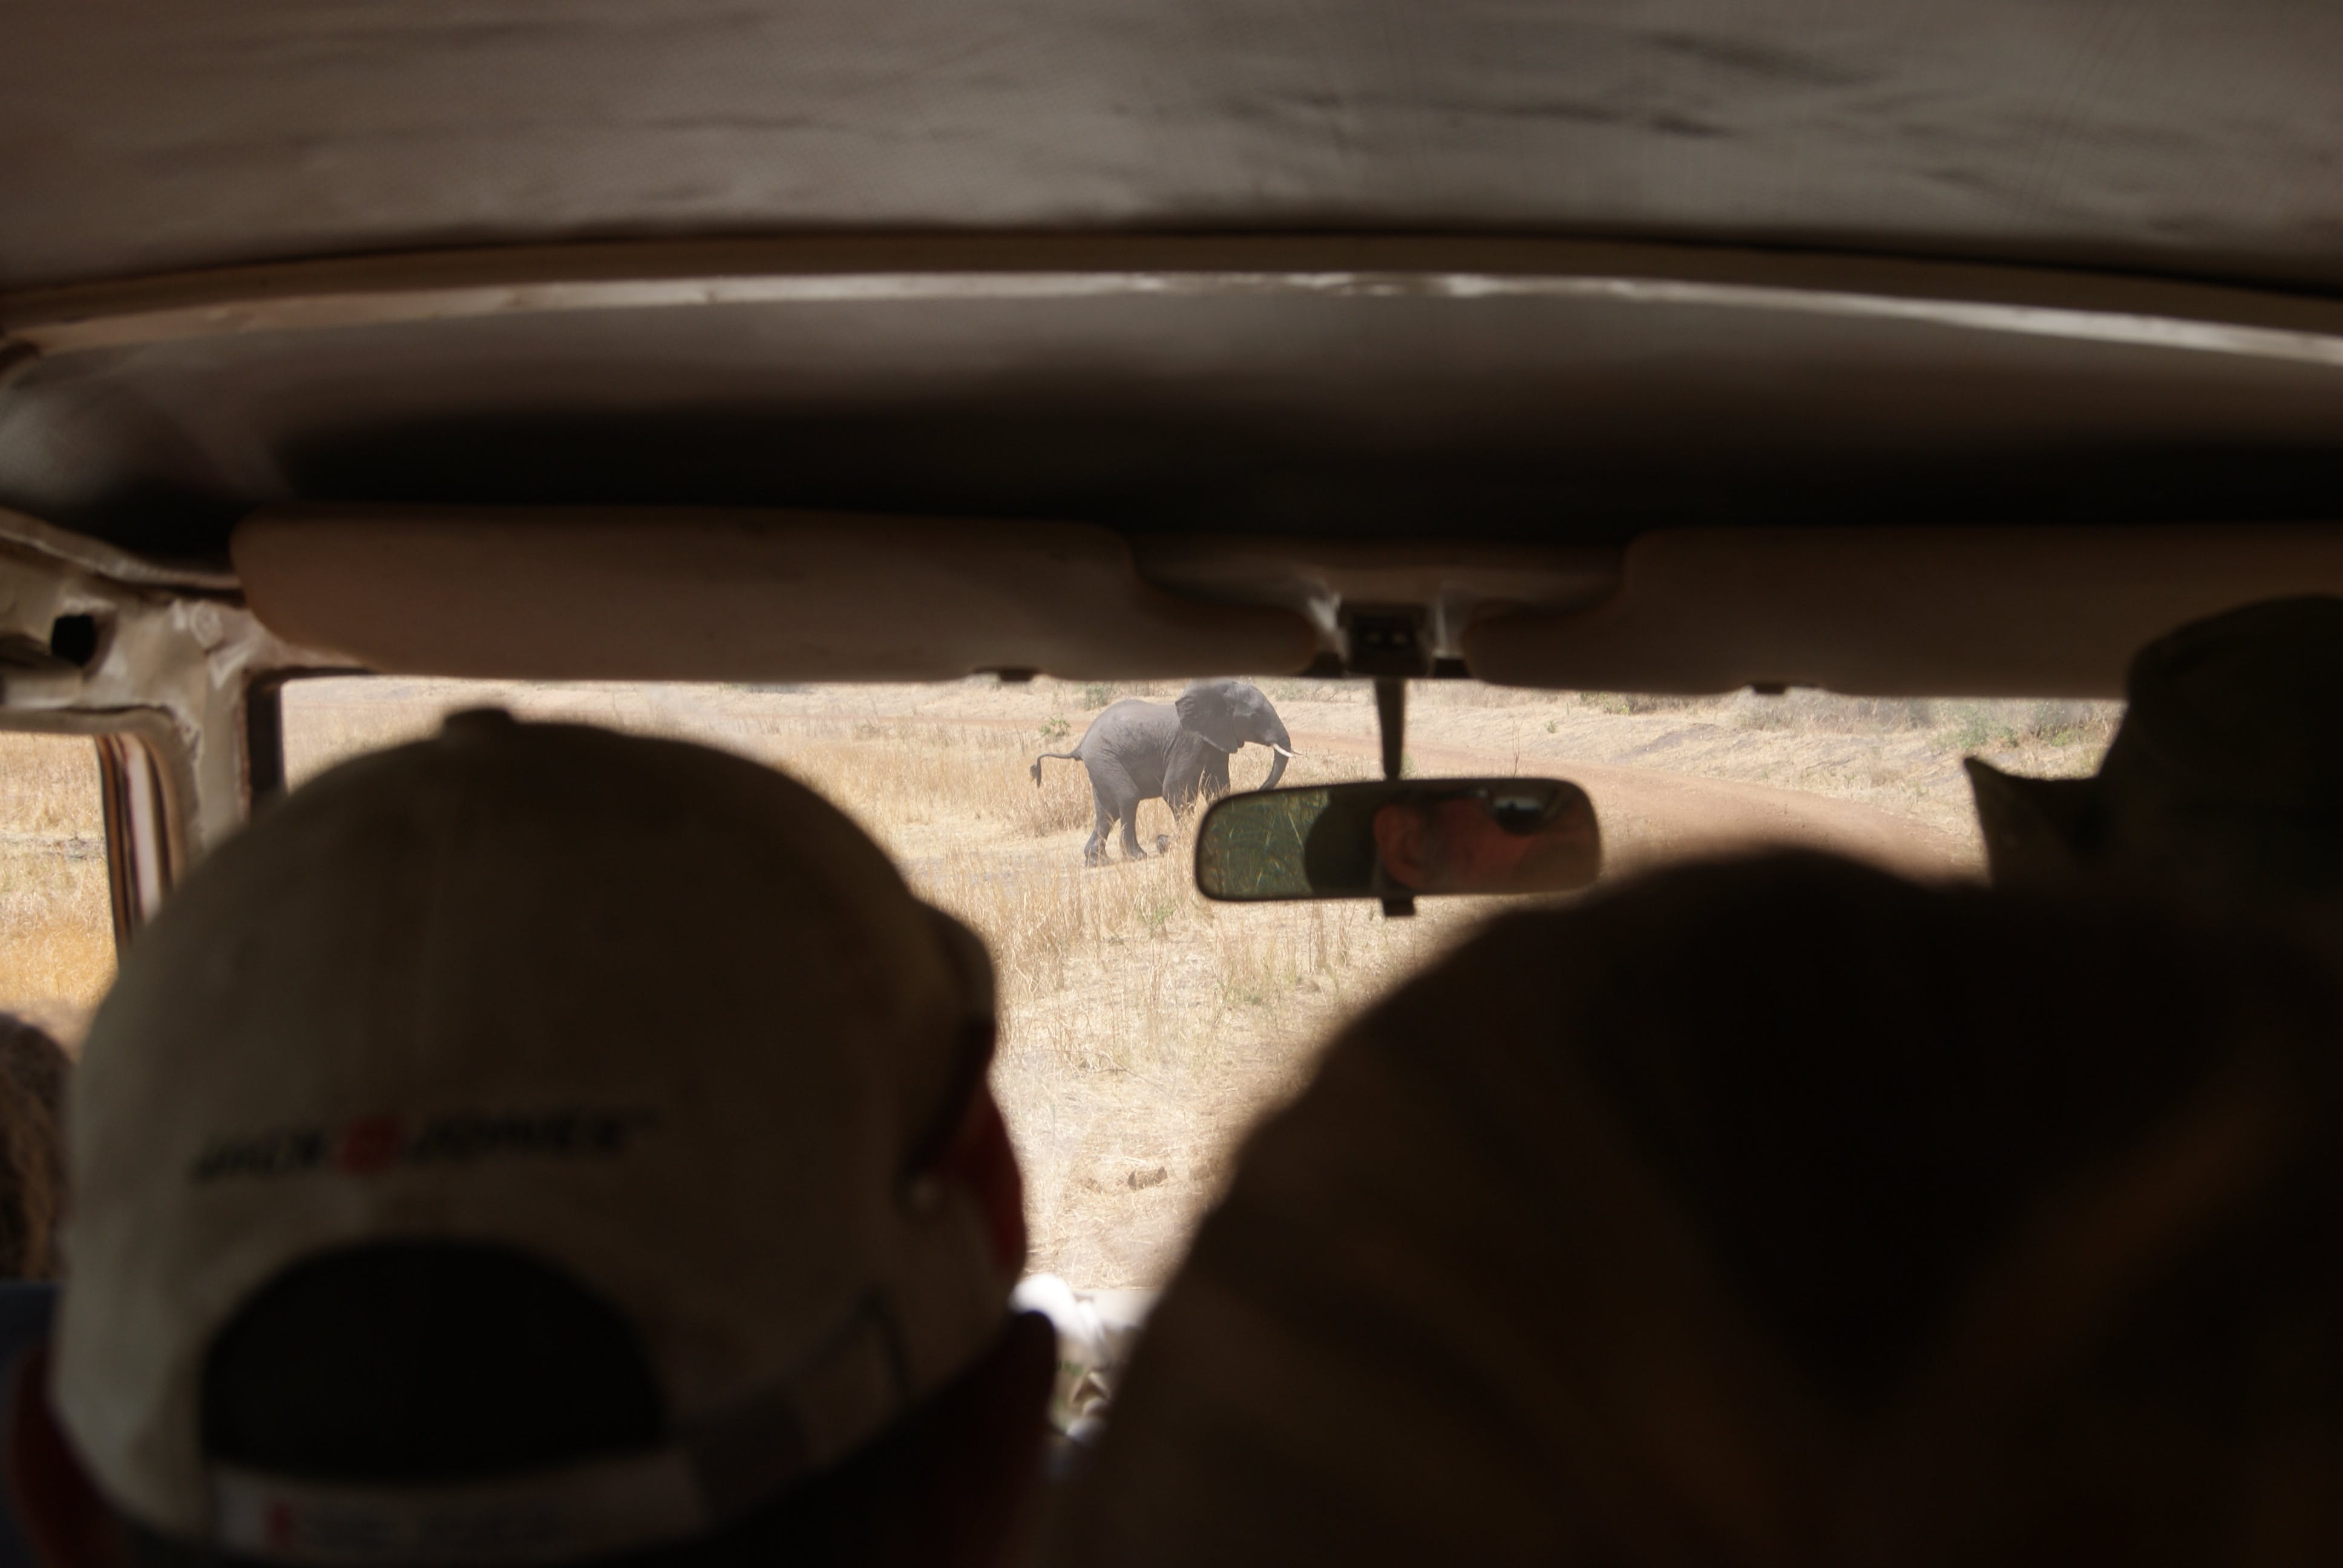 Free stock photo of car, elephant, inside car, rearview mirror